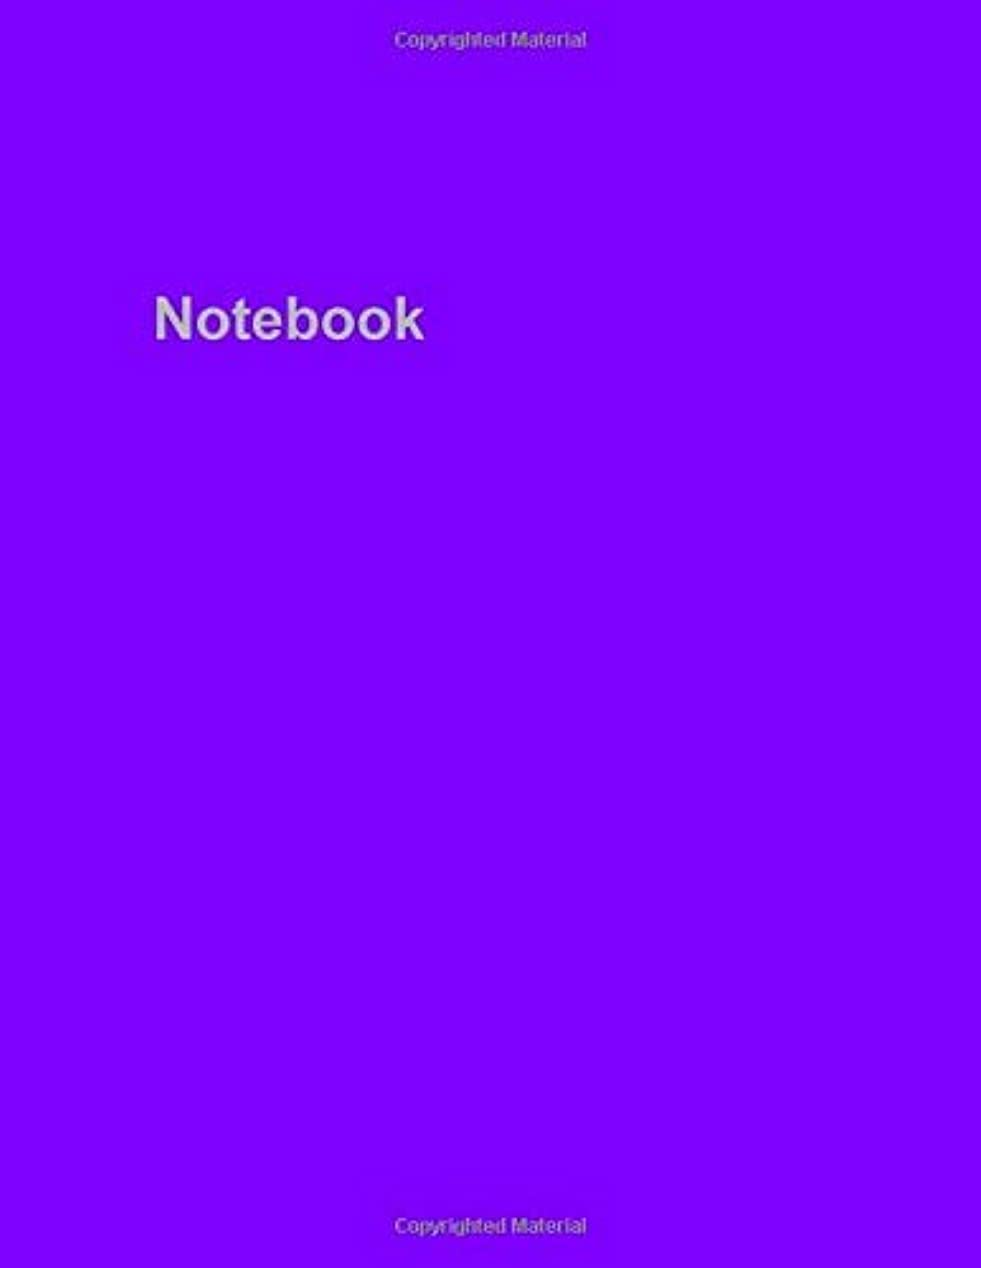 Notebook: Lined 8.5 x 11 (inches) White Paper Notebook - 104 Pages - Cover: Purple [並行輸入品]